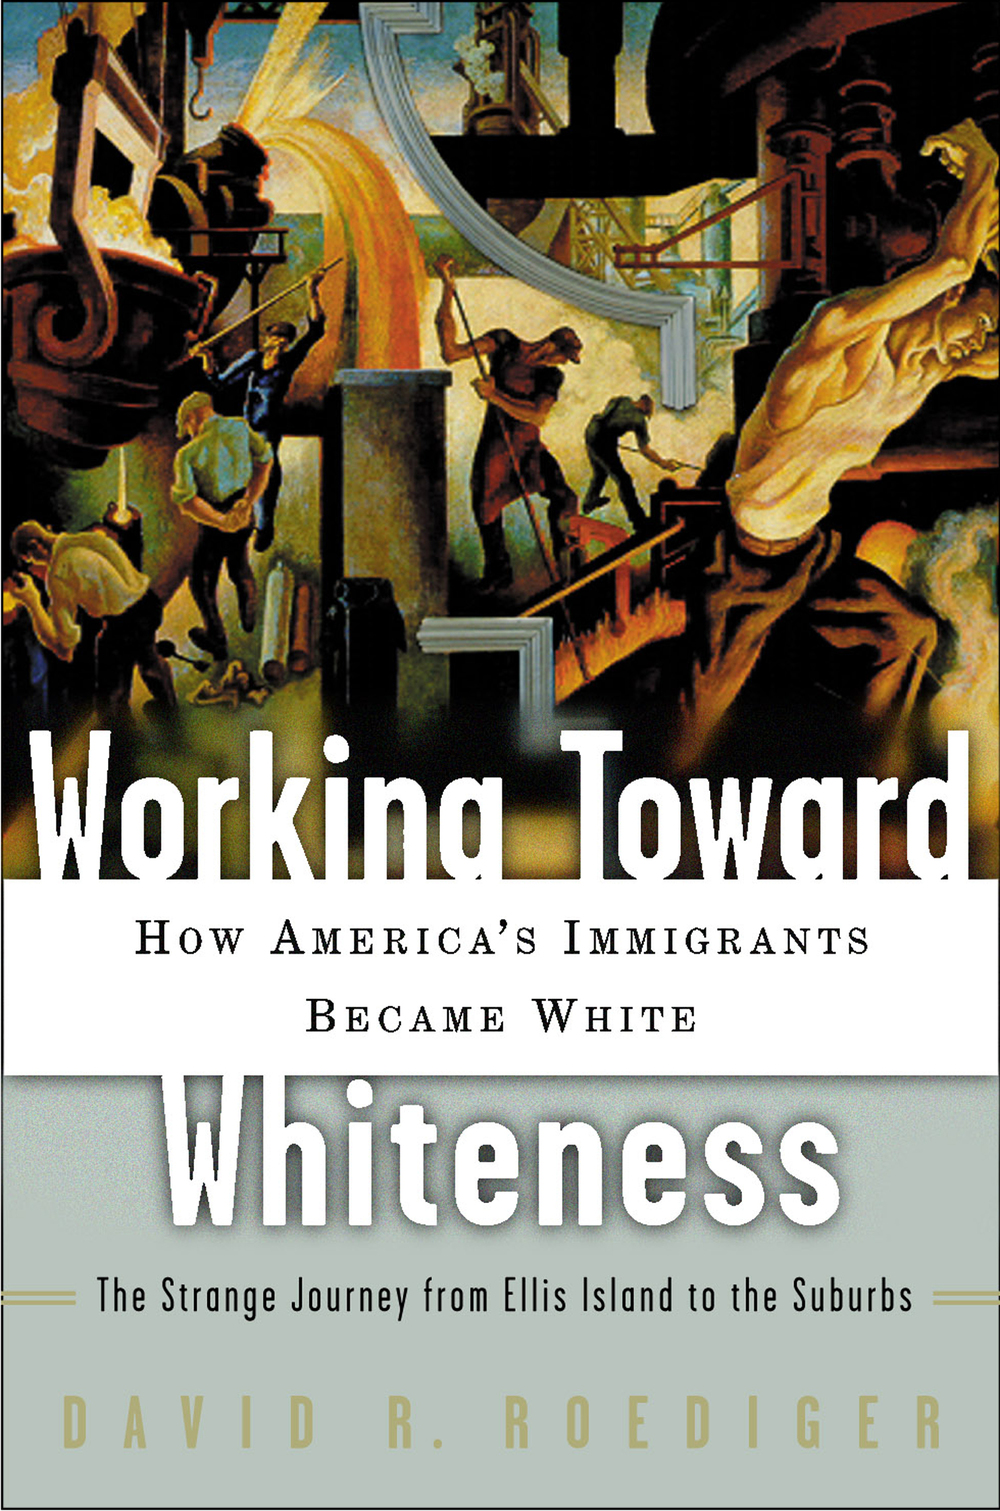 WORKING-TOWARD-WHITENESS-lo-ss6.jpg